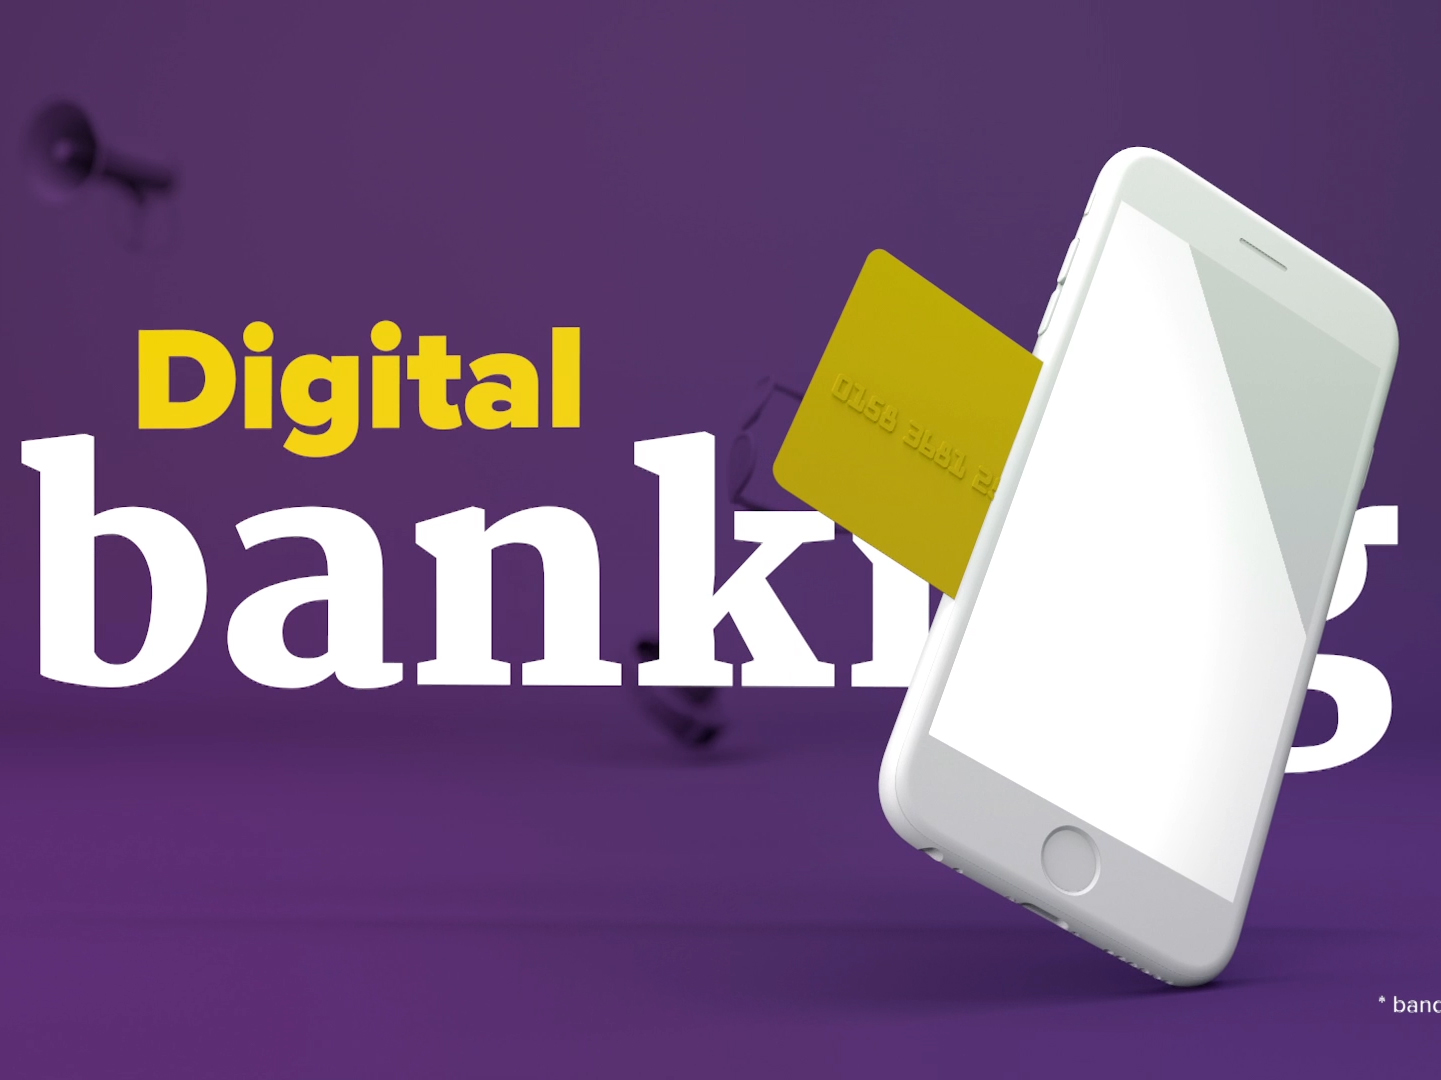 Global Digital Banking Market growth by 2026 published by leading research firm